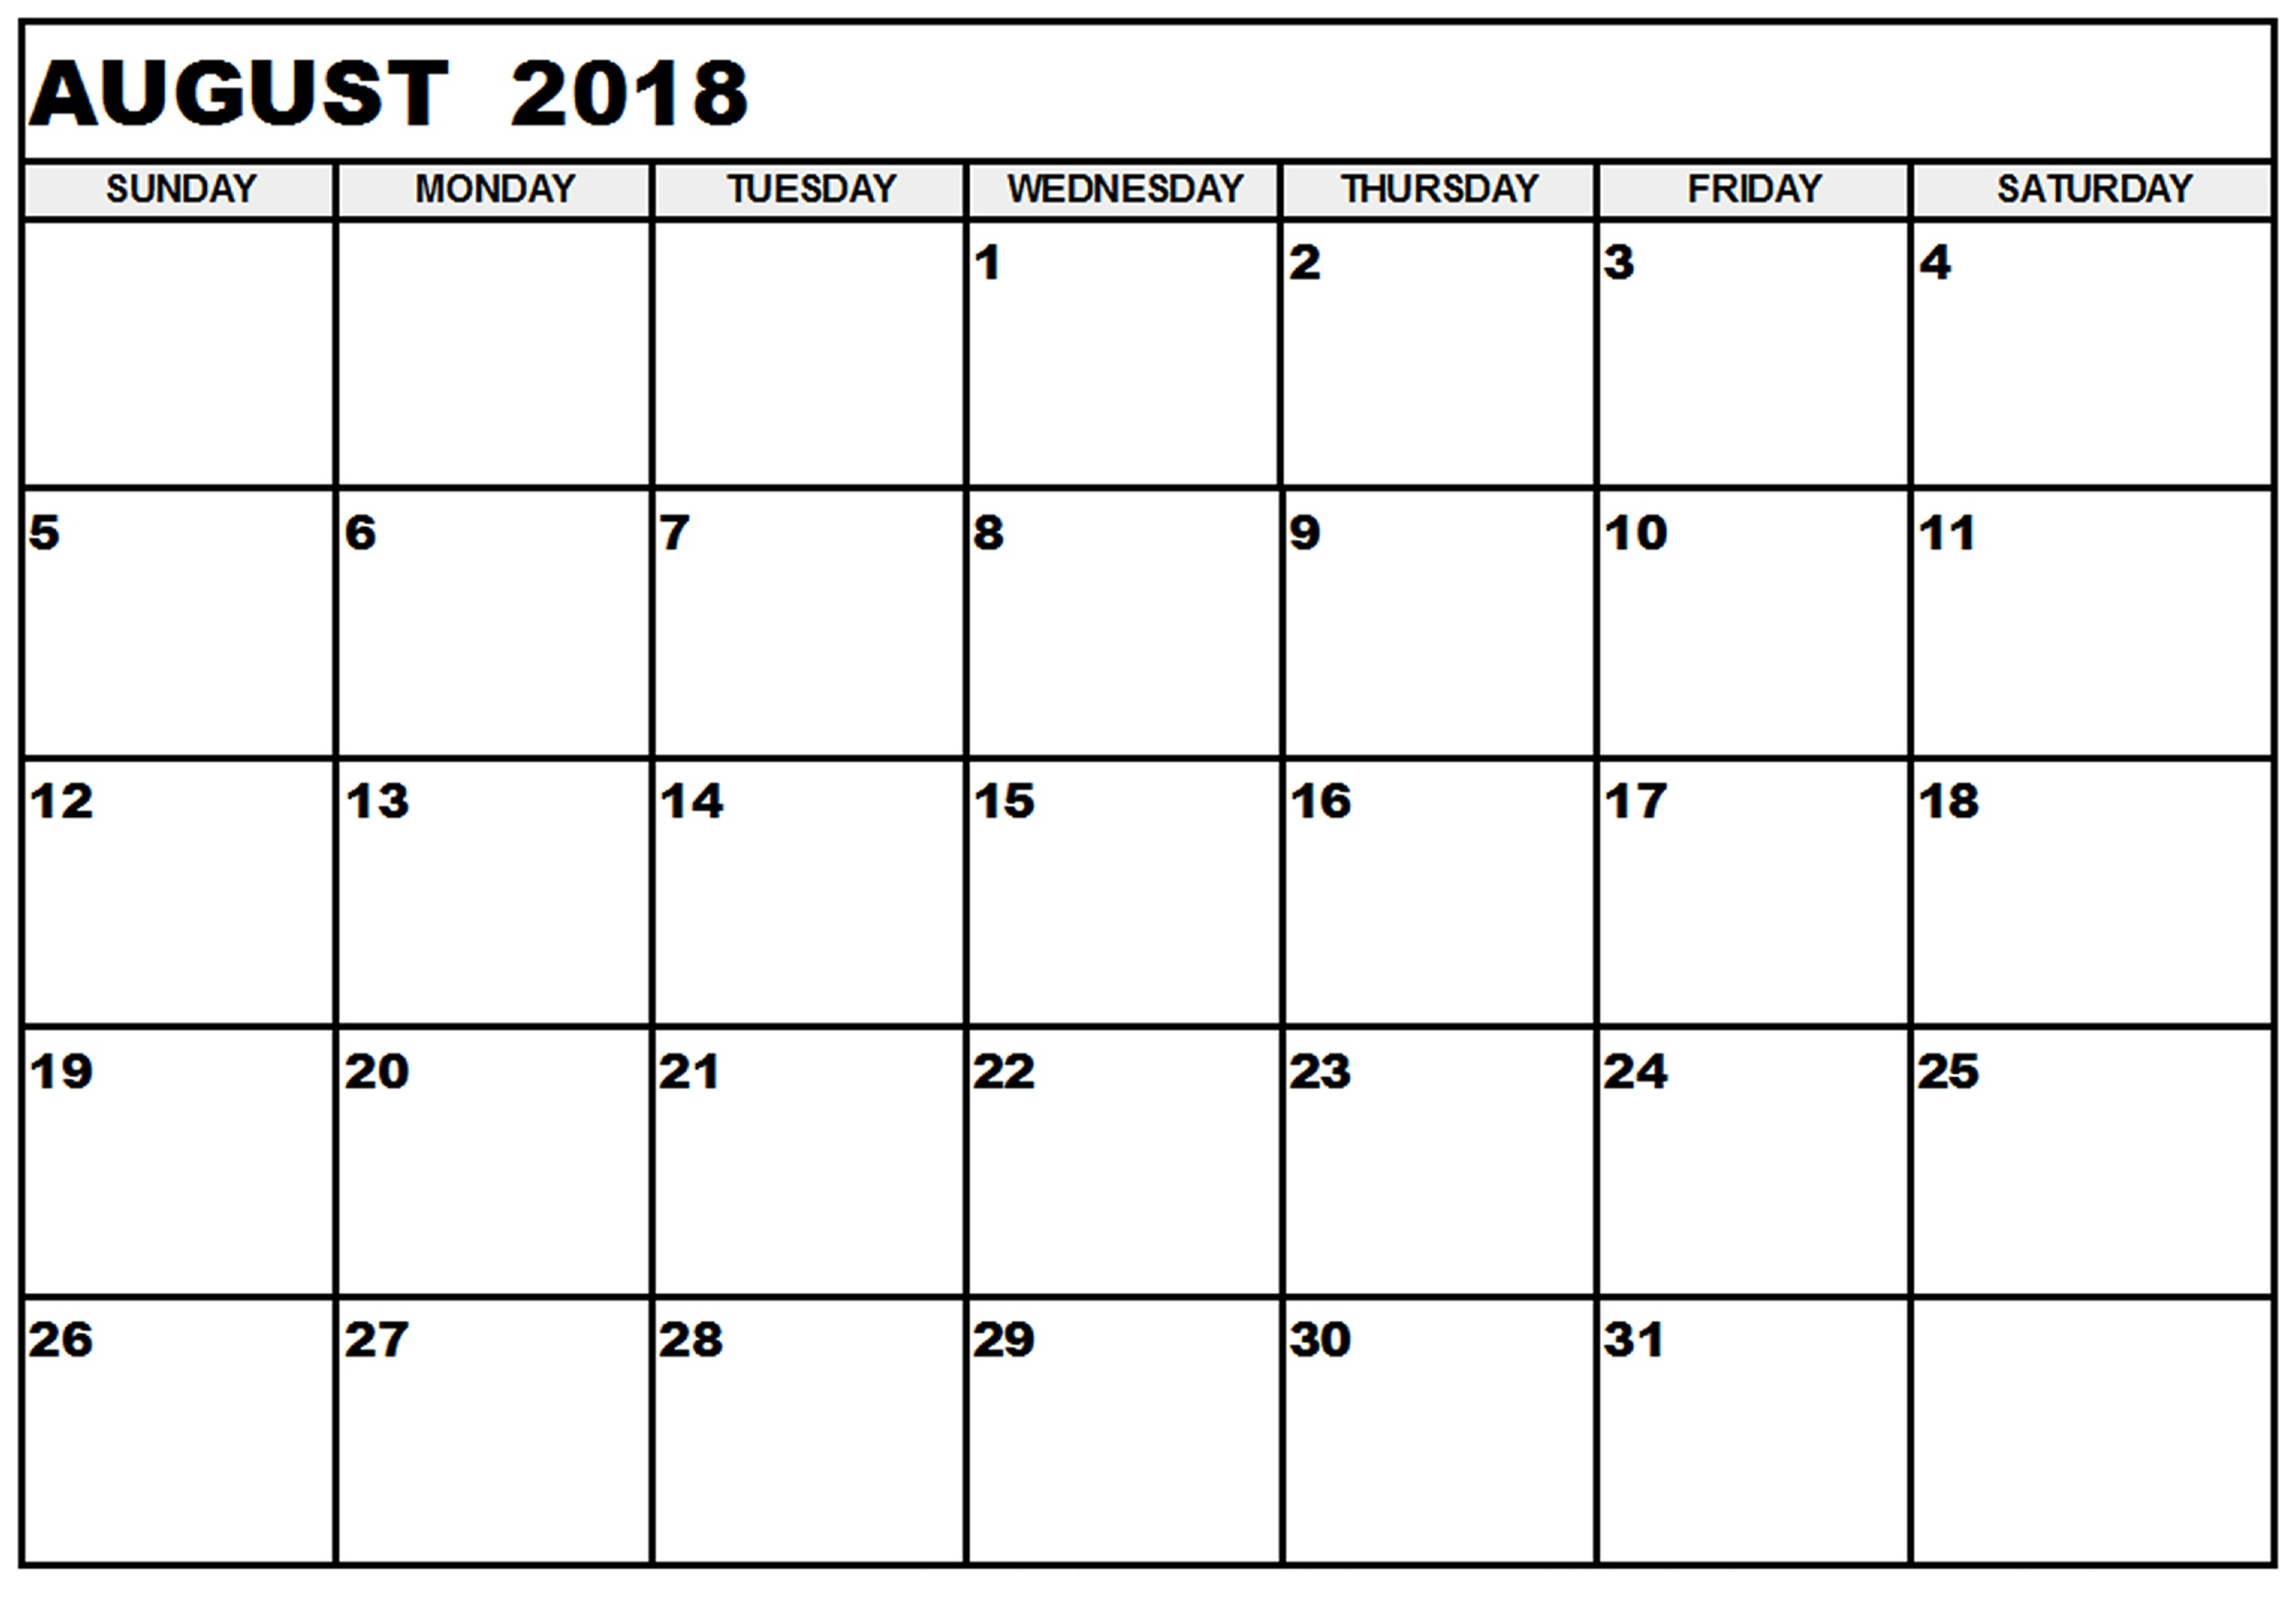 Monthly Calendar August 2018 Printable Template